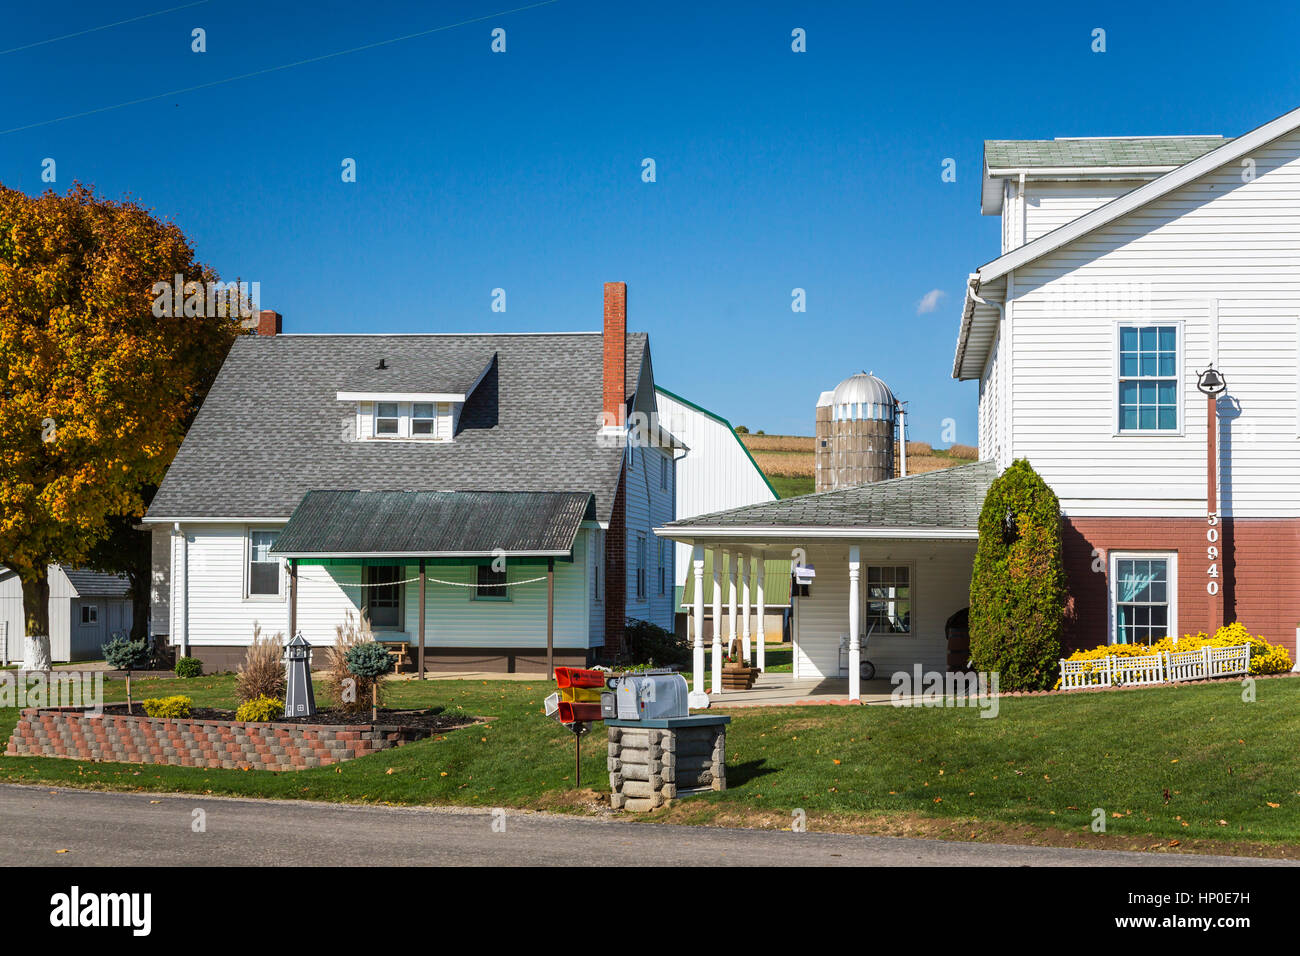 A farm in Coshocton County, Ohio, USA. - Stock Image